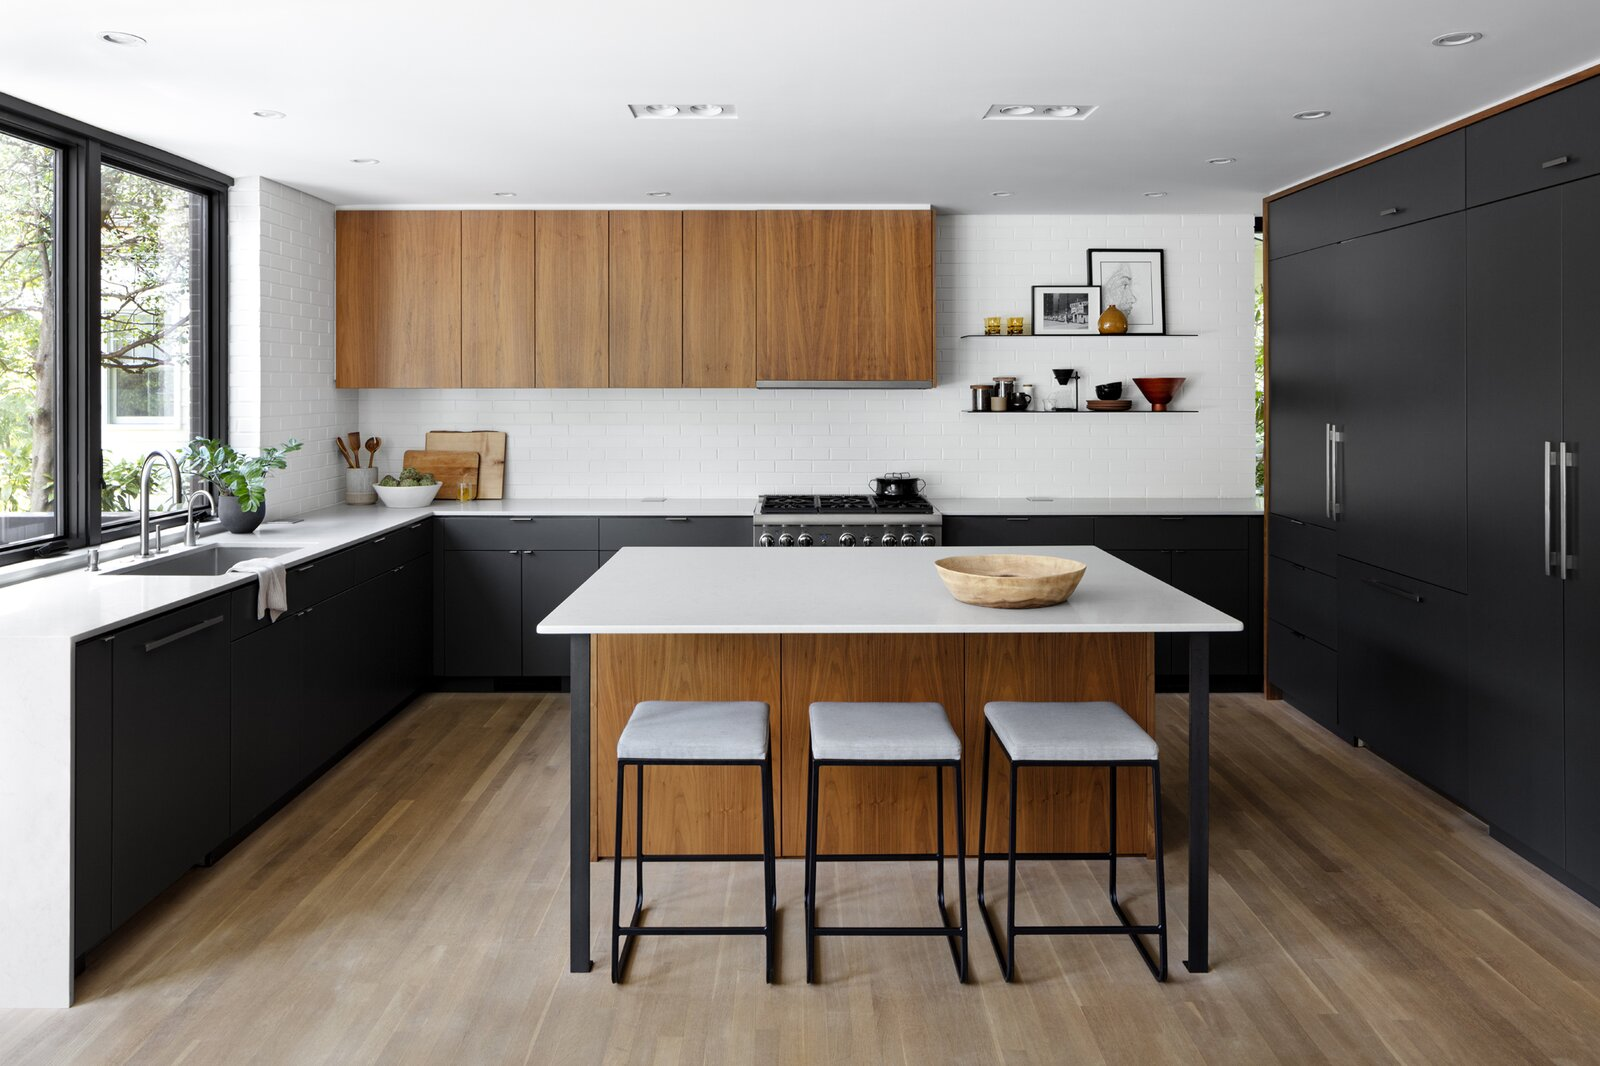 Stephenson House by Assembledge+ and Fowlkes Studio kitchen